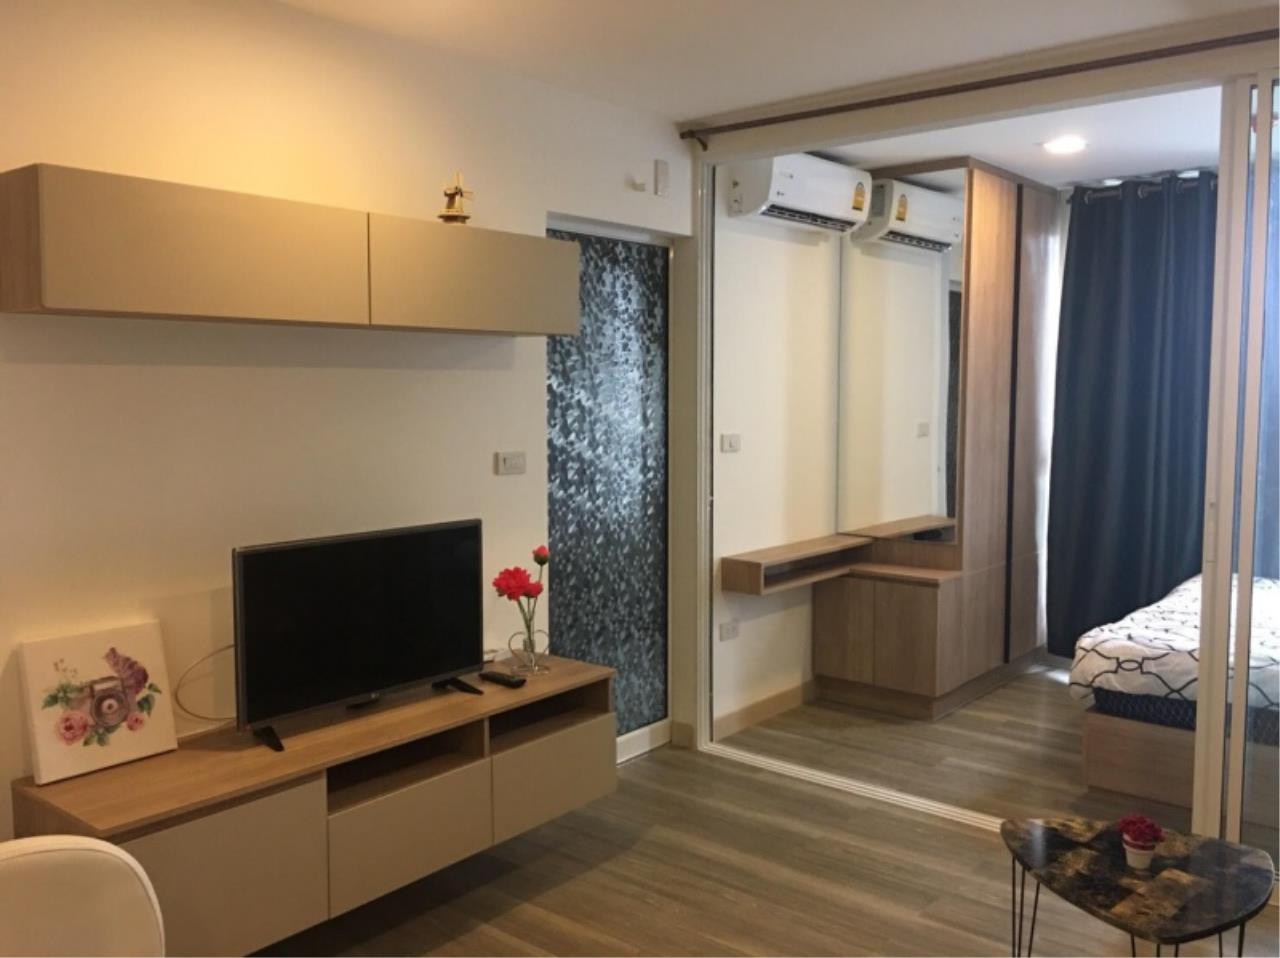 Century21 Skylux Agency's Moniiq Sukhumvit 64 / Condo For Rent / 1 Bedroom / 28 SQM / BTS Bang Chak / Bangkok 3